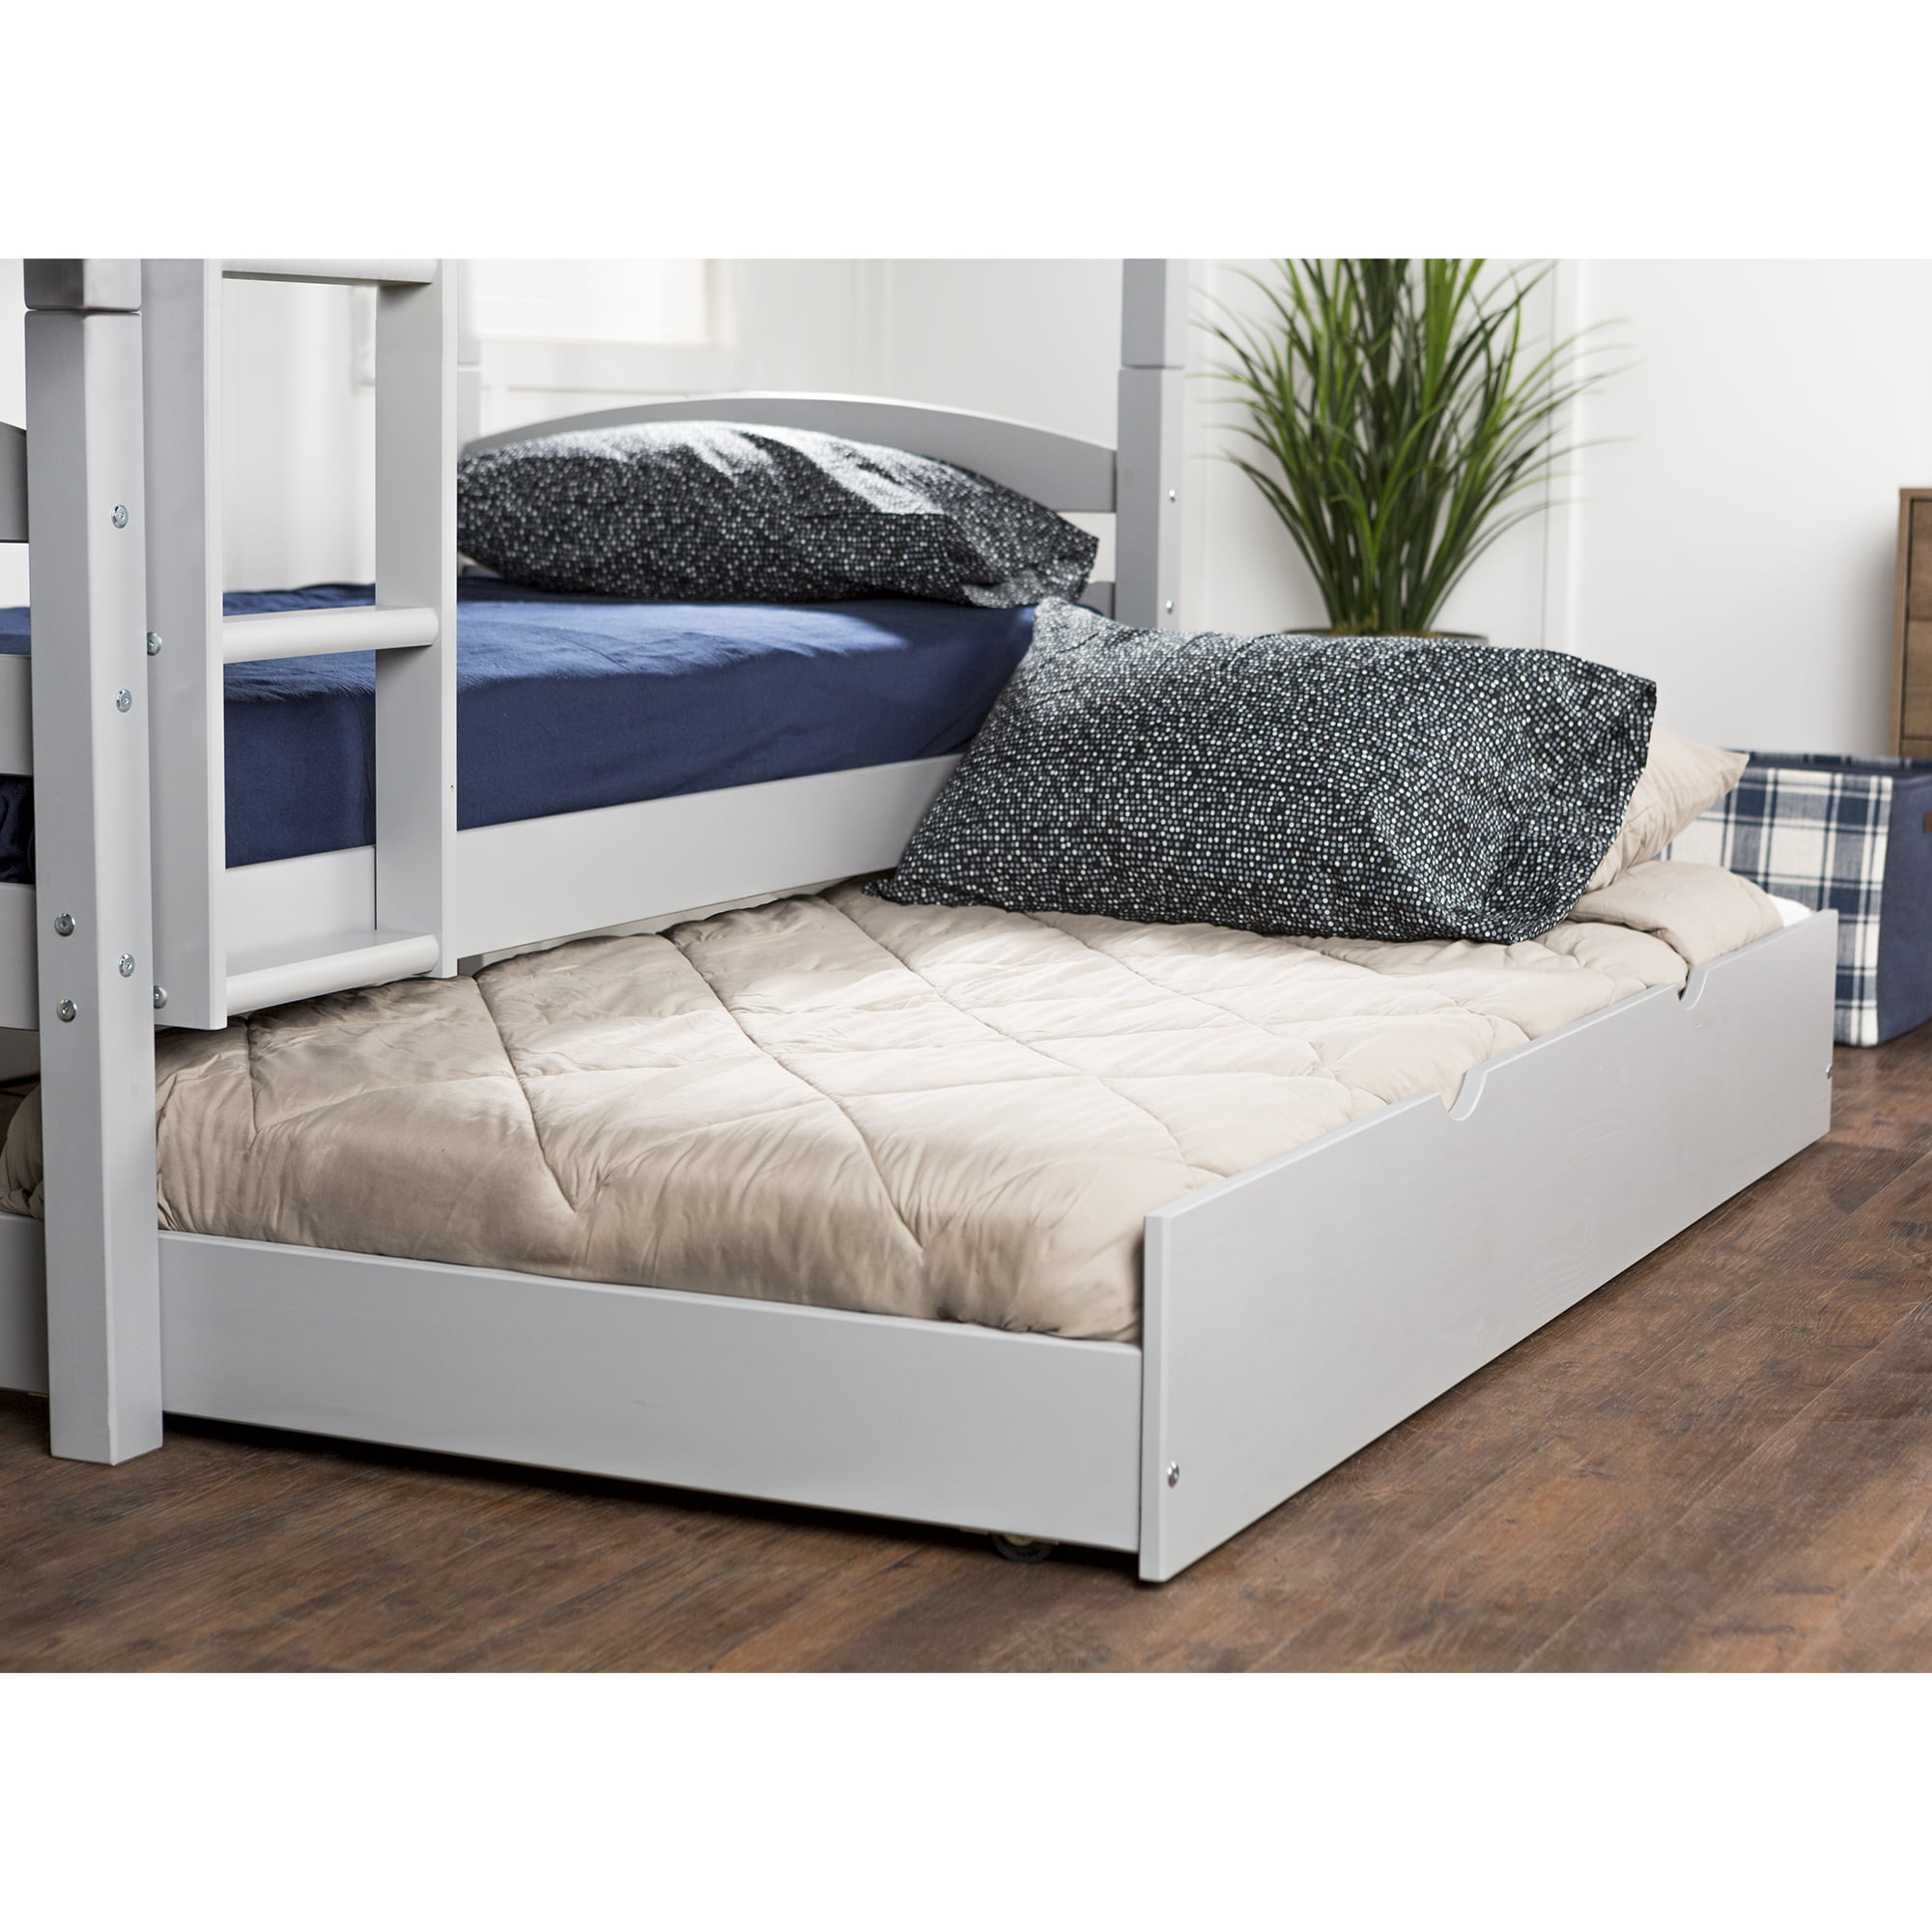 best service 5274c 25944 Manor Park Solid Wood Twin Trundle Bed - Grey